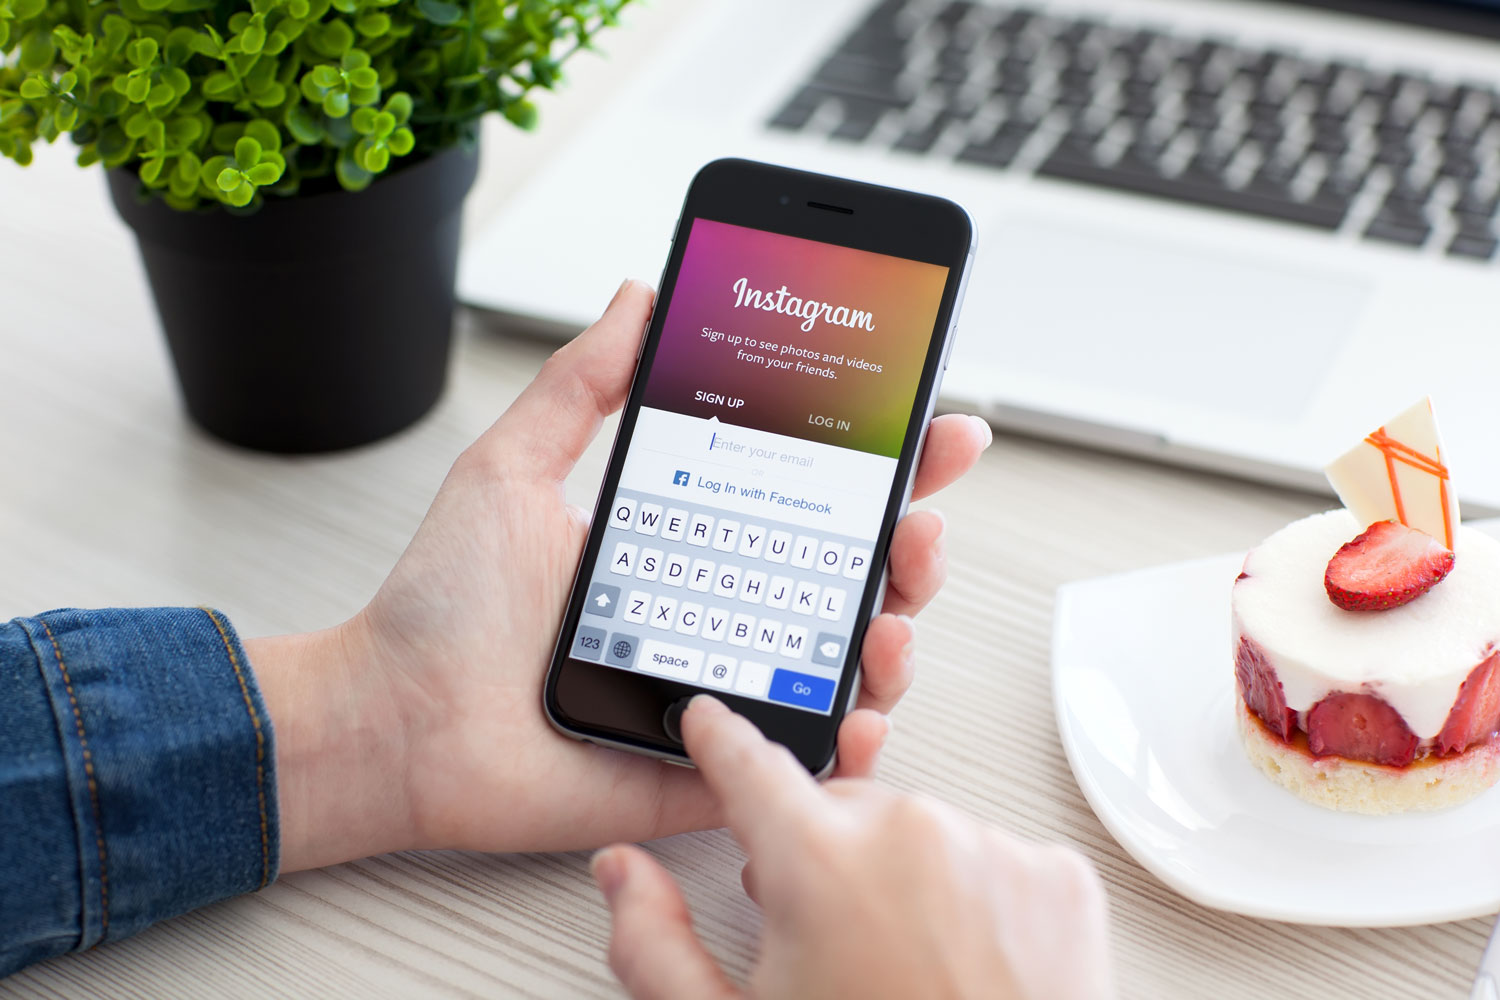 The Essential Guide to Secure Your Instagram Account